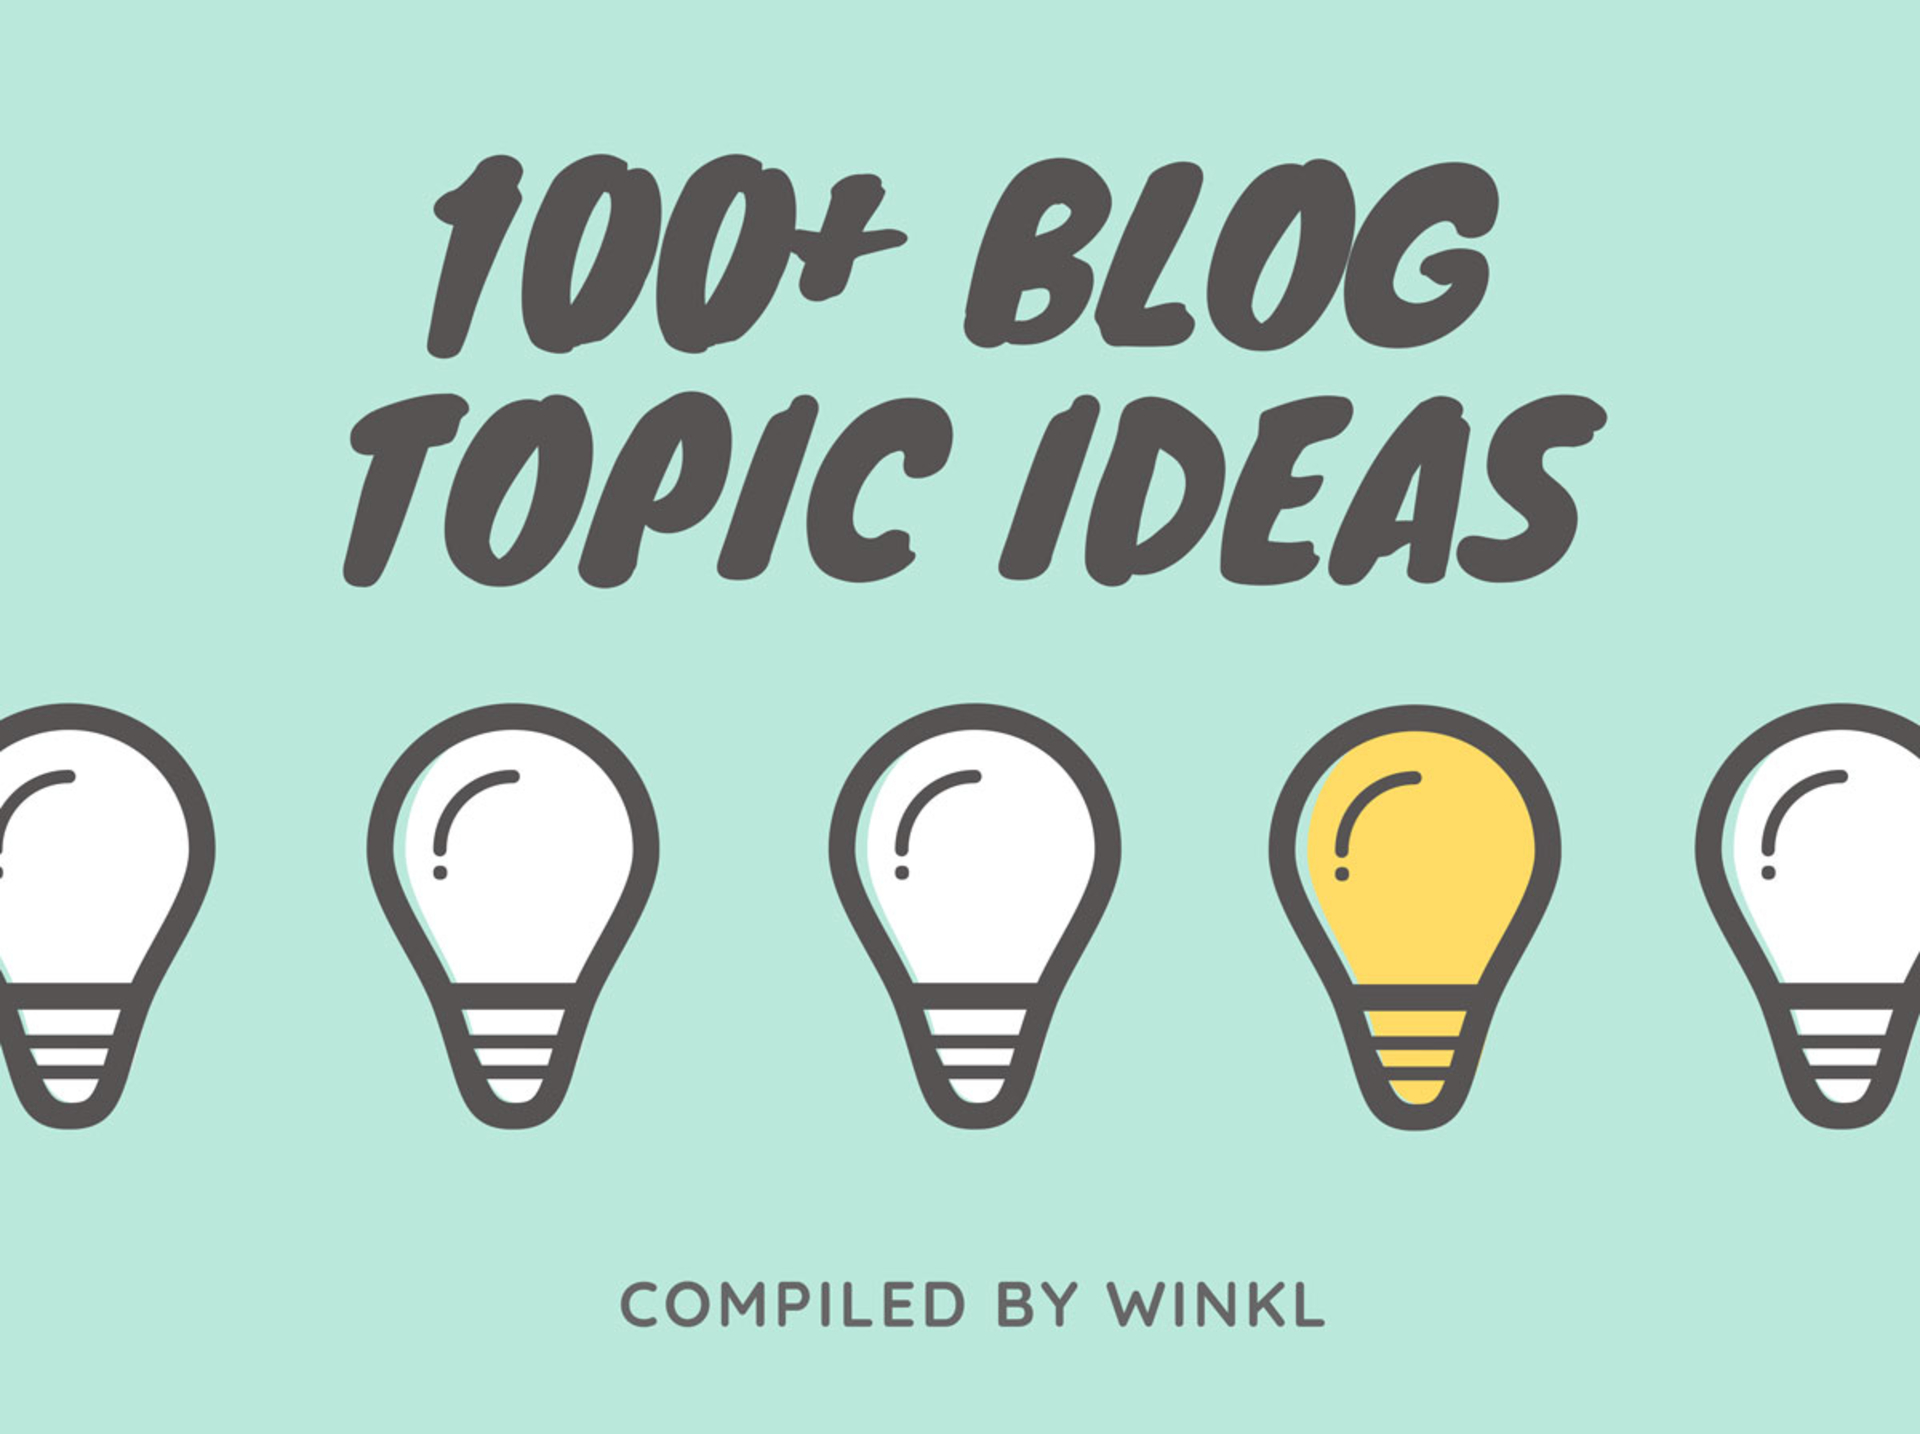 100+ Blog Topic Ideas image